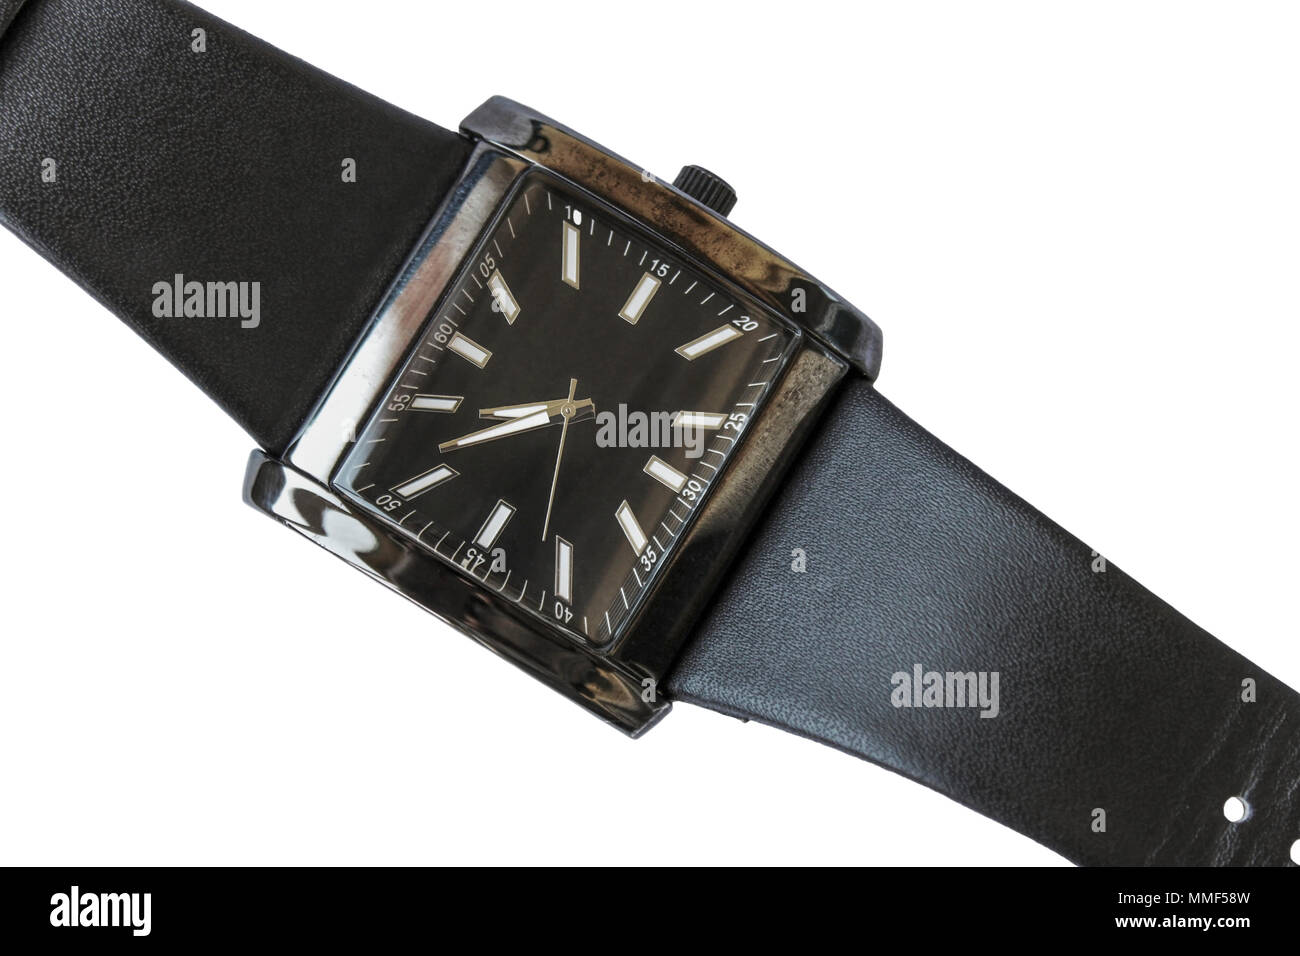 Wrist watch with a black leather remshkom isolated on a white background - Stock Image